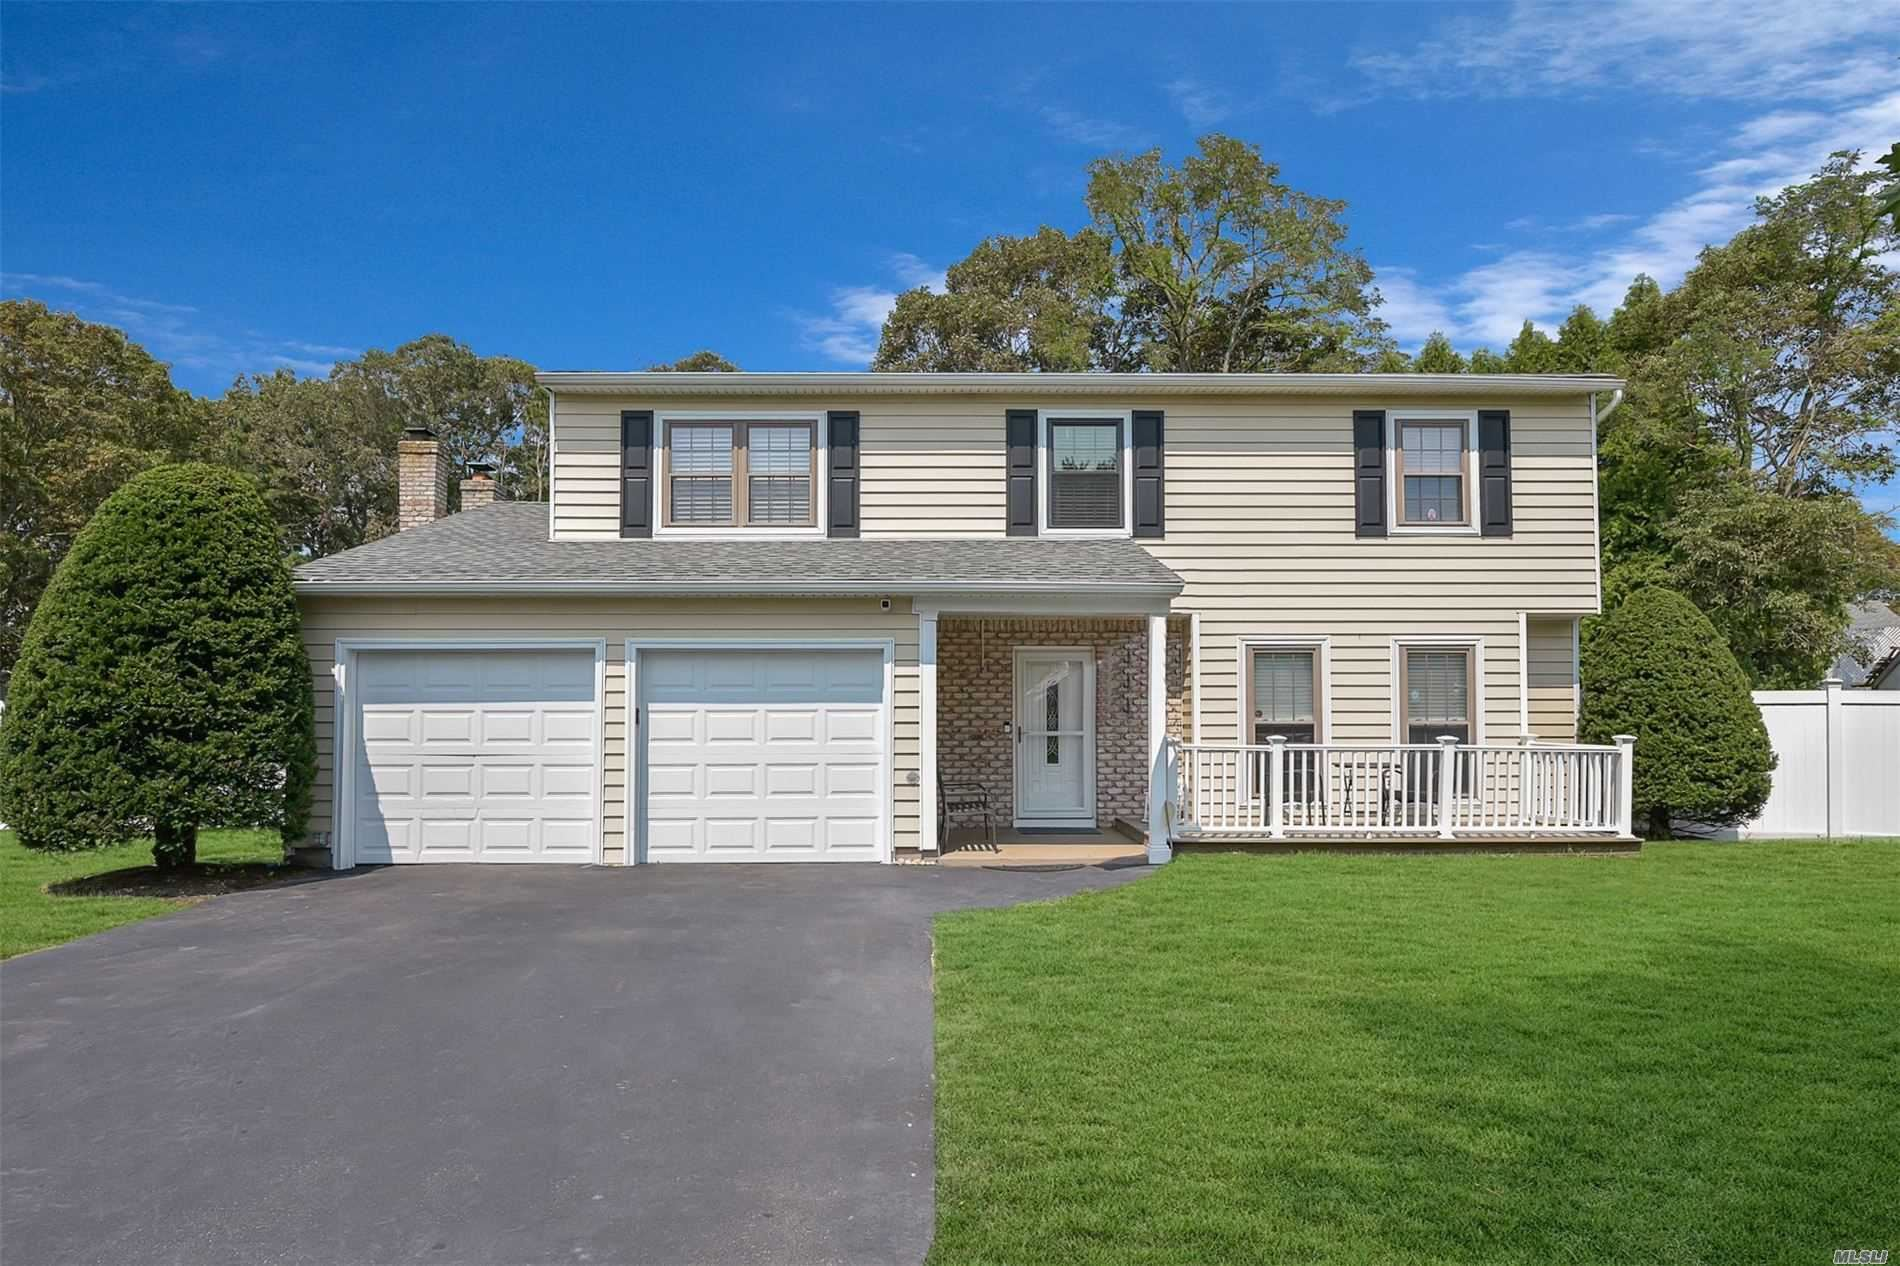 19 Cheryl Lane, East Patchogue, NY 11772 - MLS#: 3246649